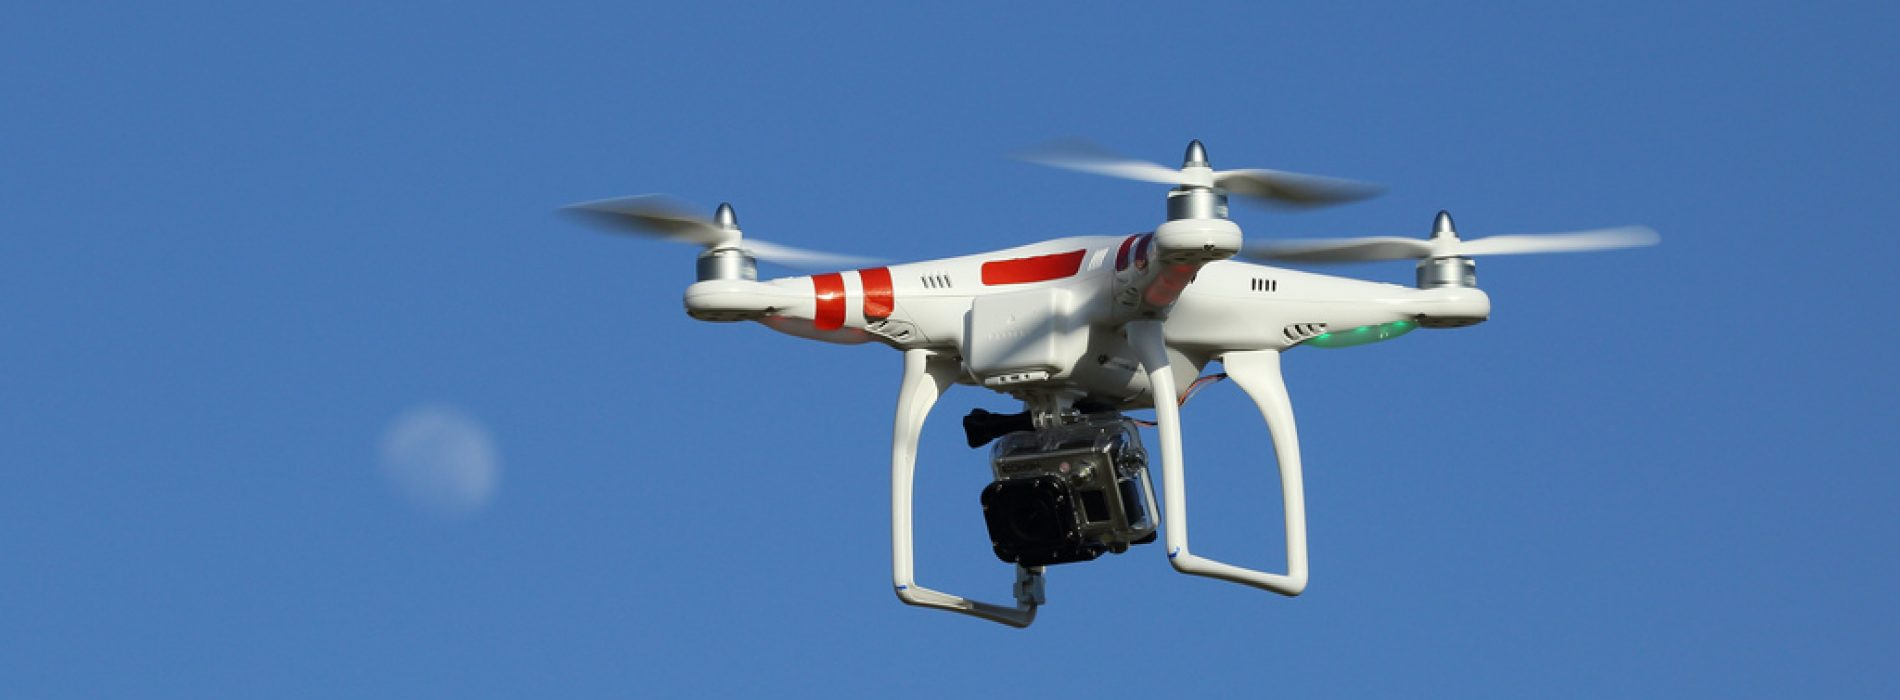 Drone Lifeguards – Coming to an Irish Beach Near You This Summer